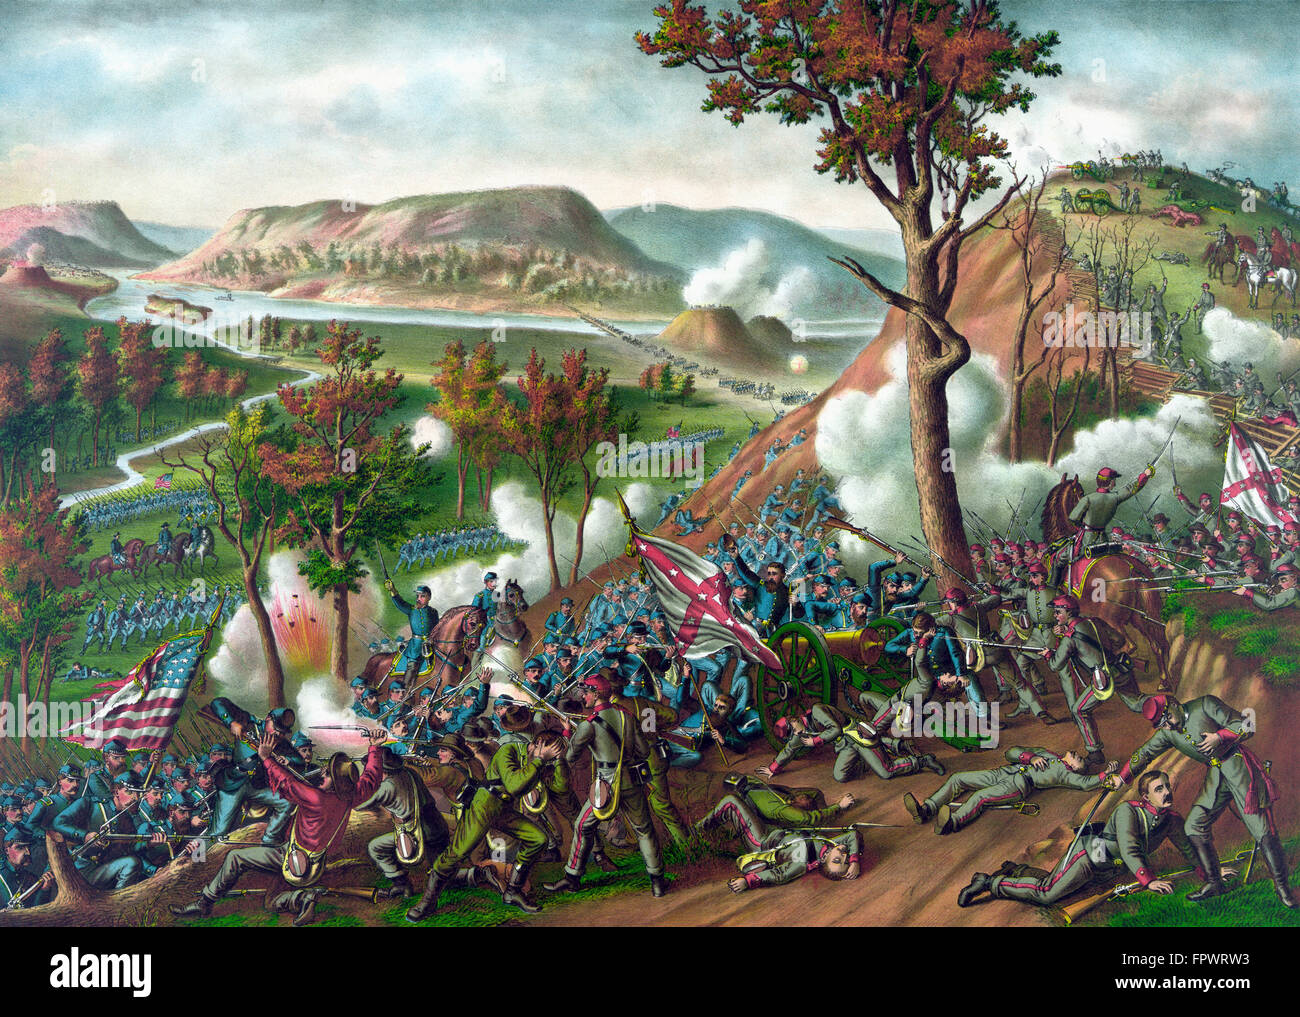 Vintage American Civil War print of the Battle of Missionary Ridge, which took place during the Chattanooga Campaign. - Stock Image